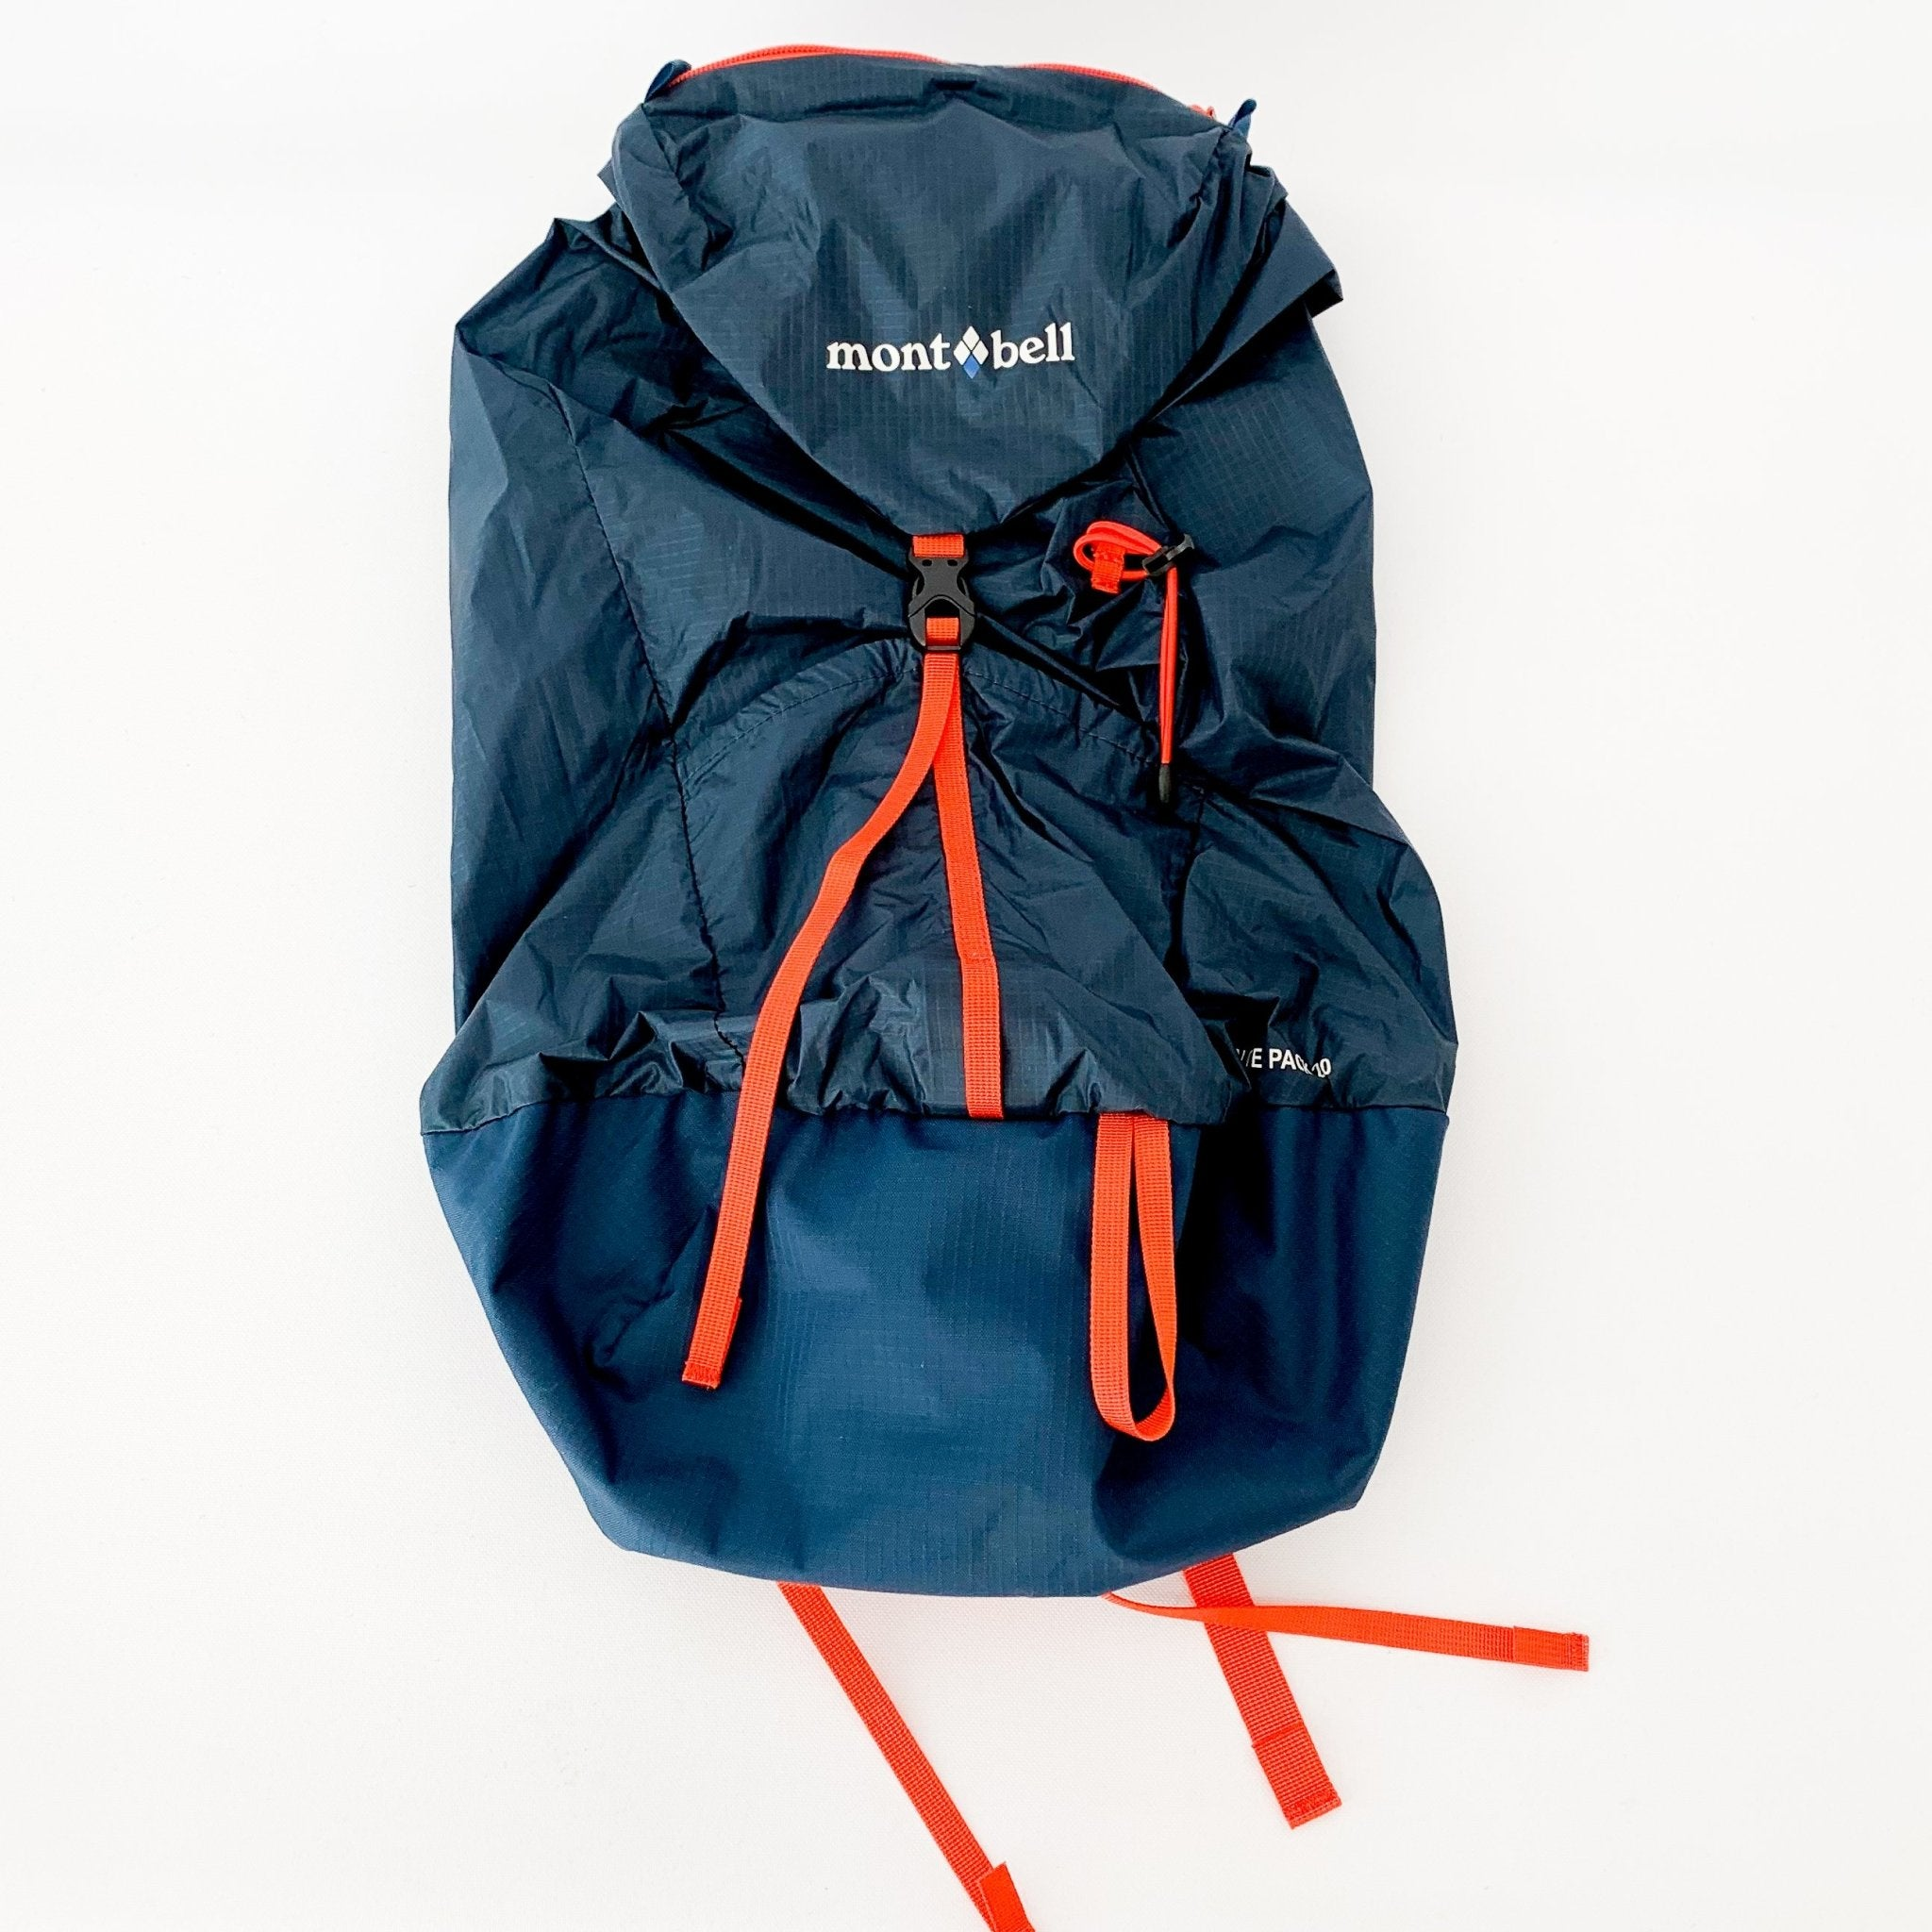 Montbell Versalite Backpack - tortoise general store